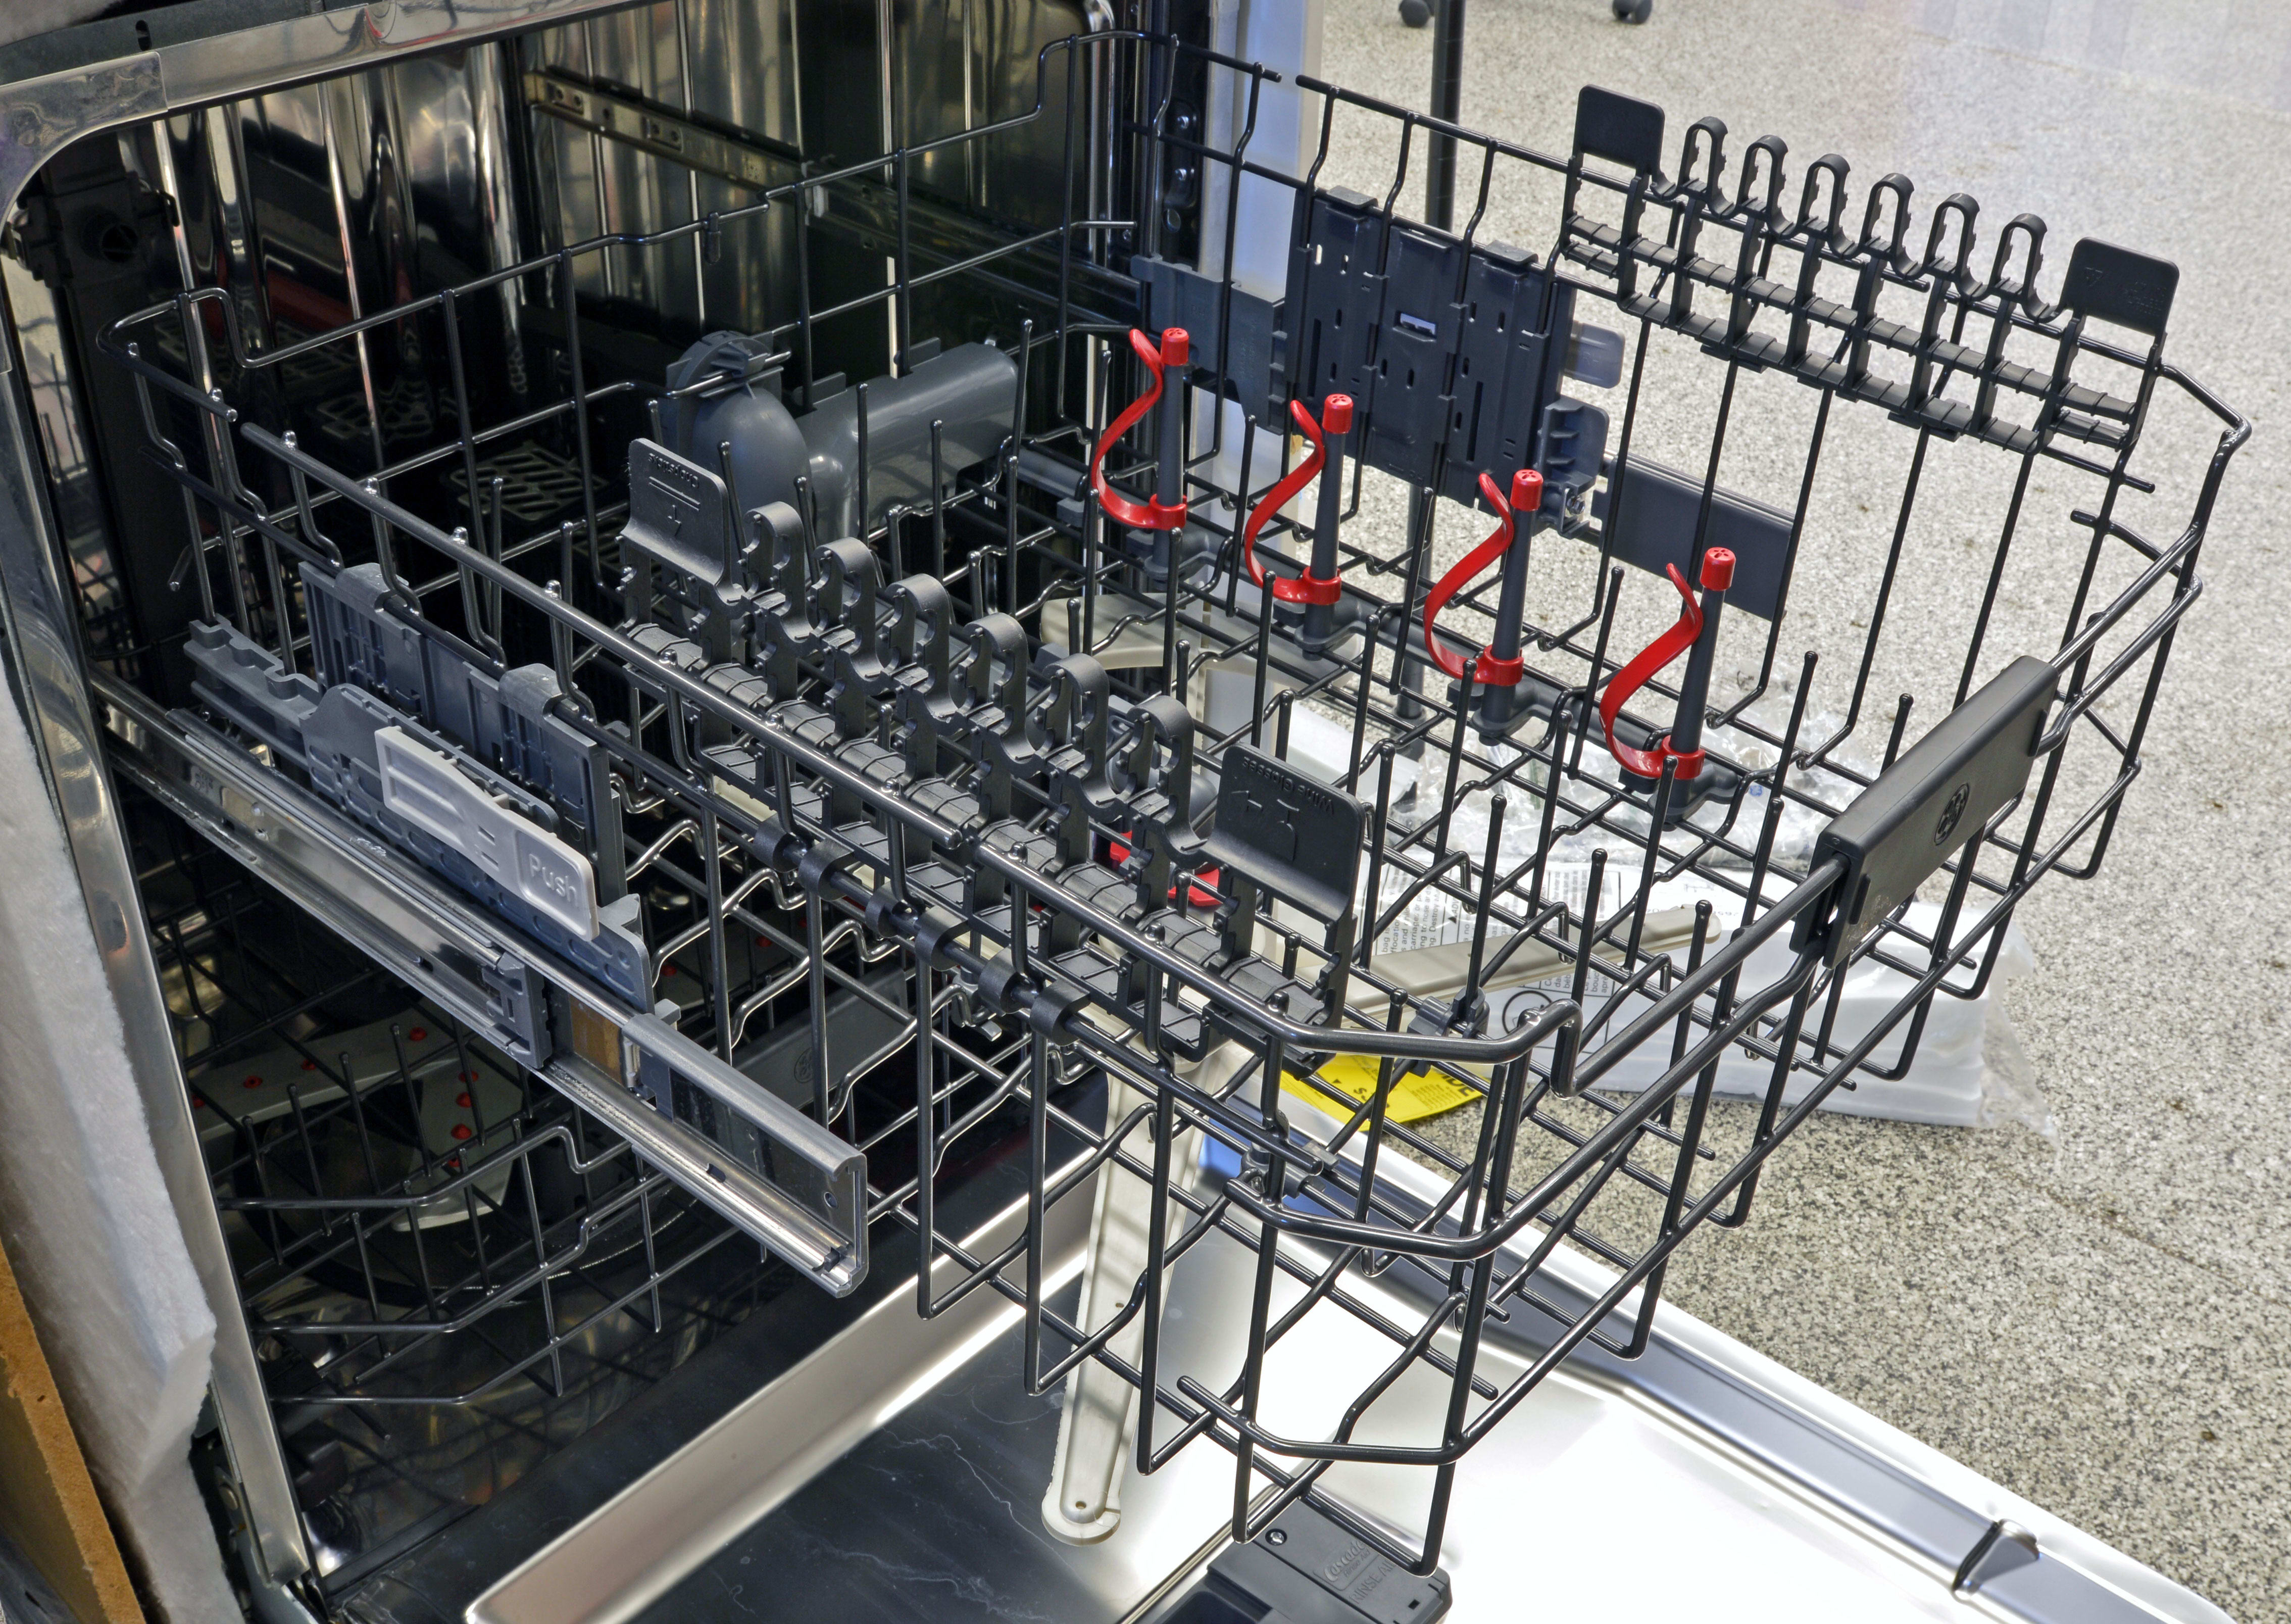 The upper rack features two sets of stemware holders, as well as four bottle jets.